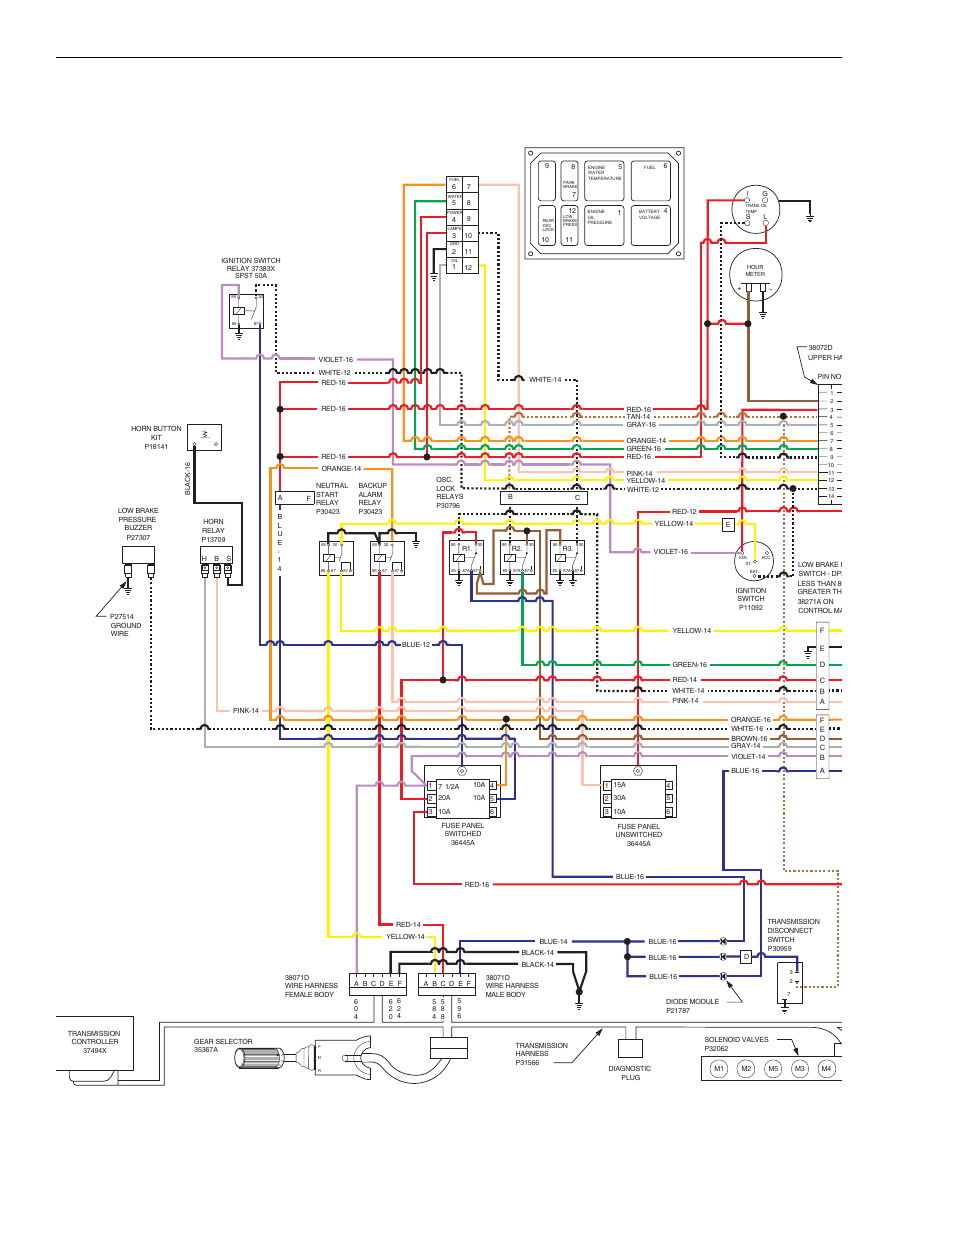 lull 6k service manual page108 lull wiring diagrams atlas copco wiring diagram \u2022 free wiring Grove Lifts Wiring Schematics at panicattacktreatment.co